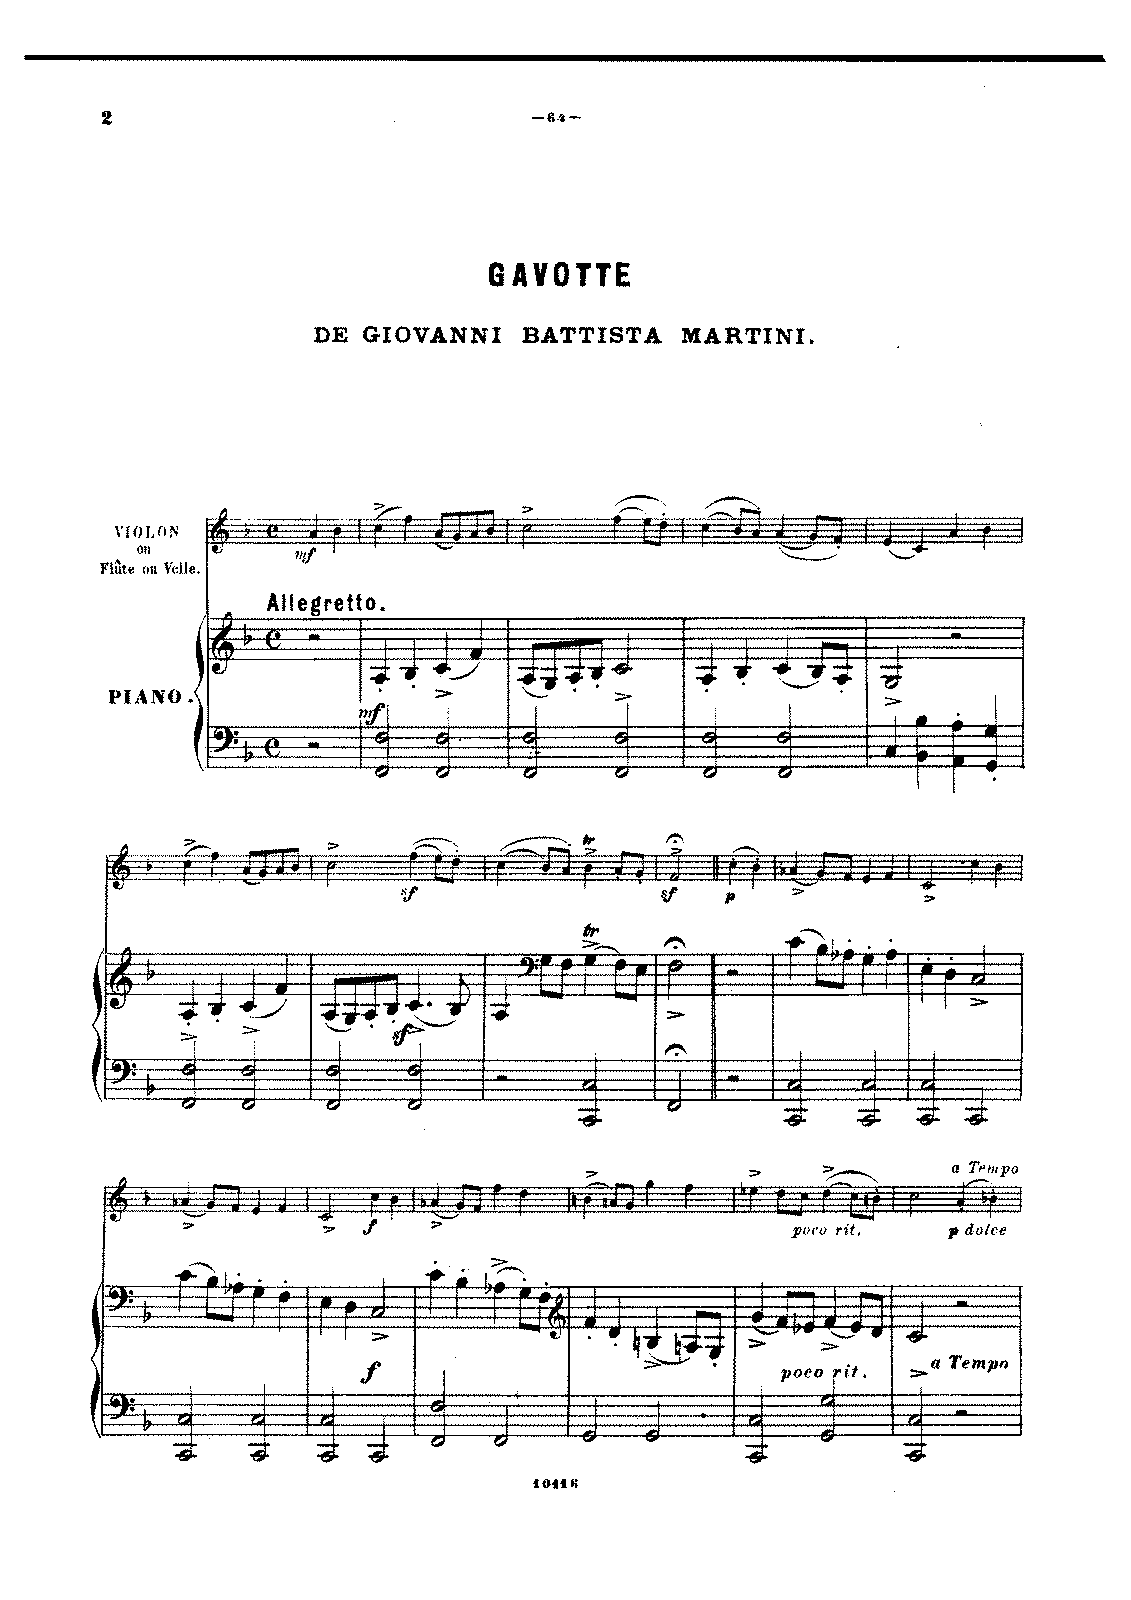 PMLP52386-Martini - Gavotte for Cello and Piano score.pdf